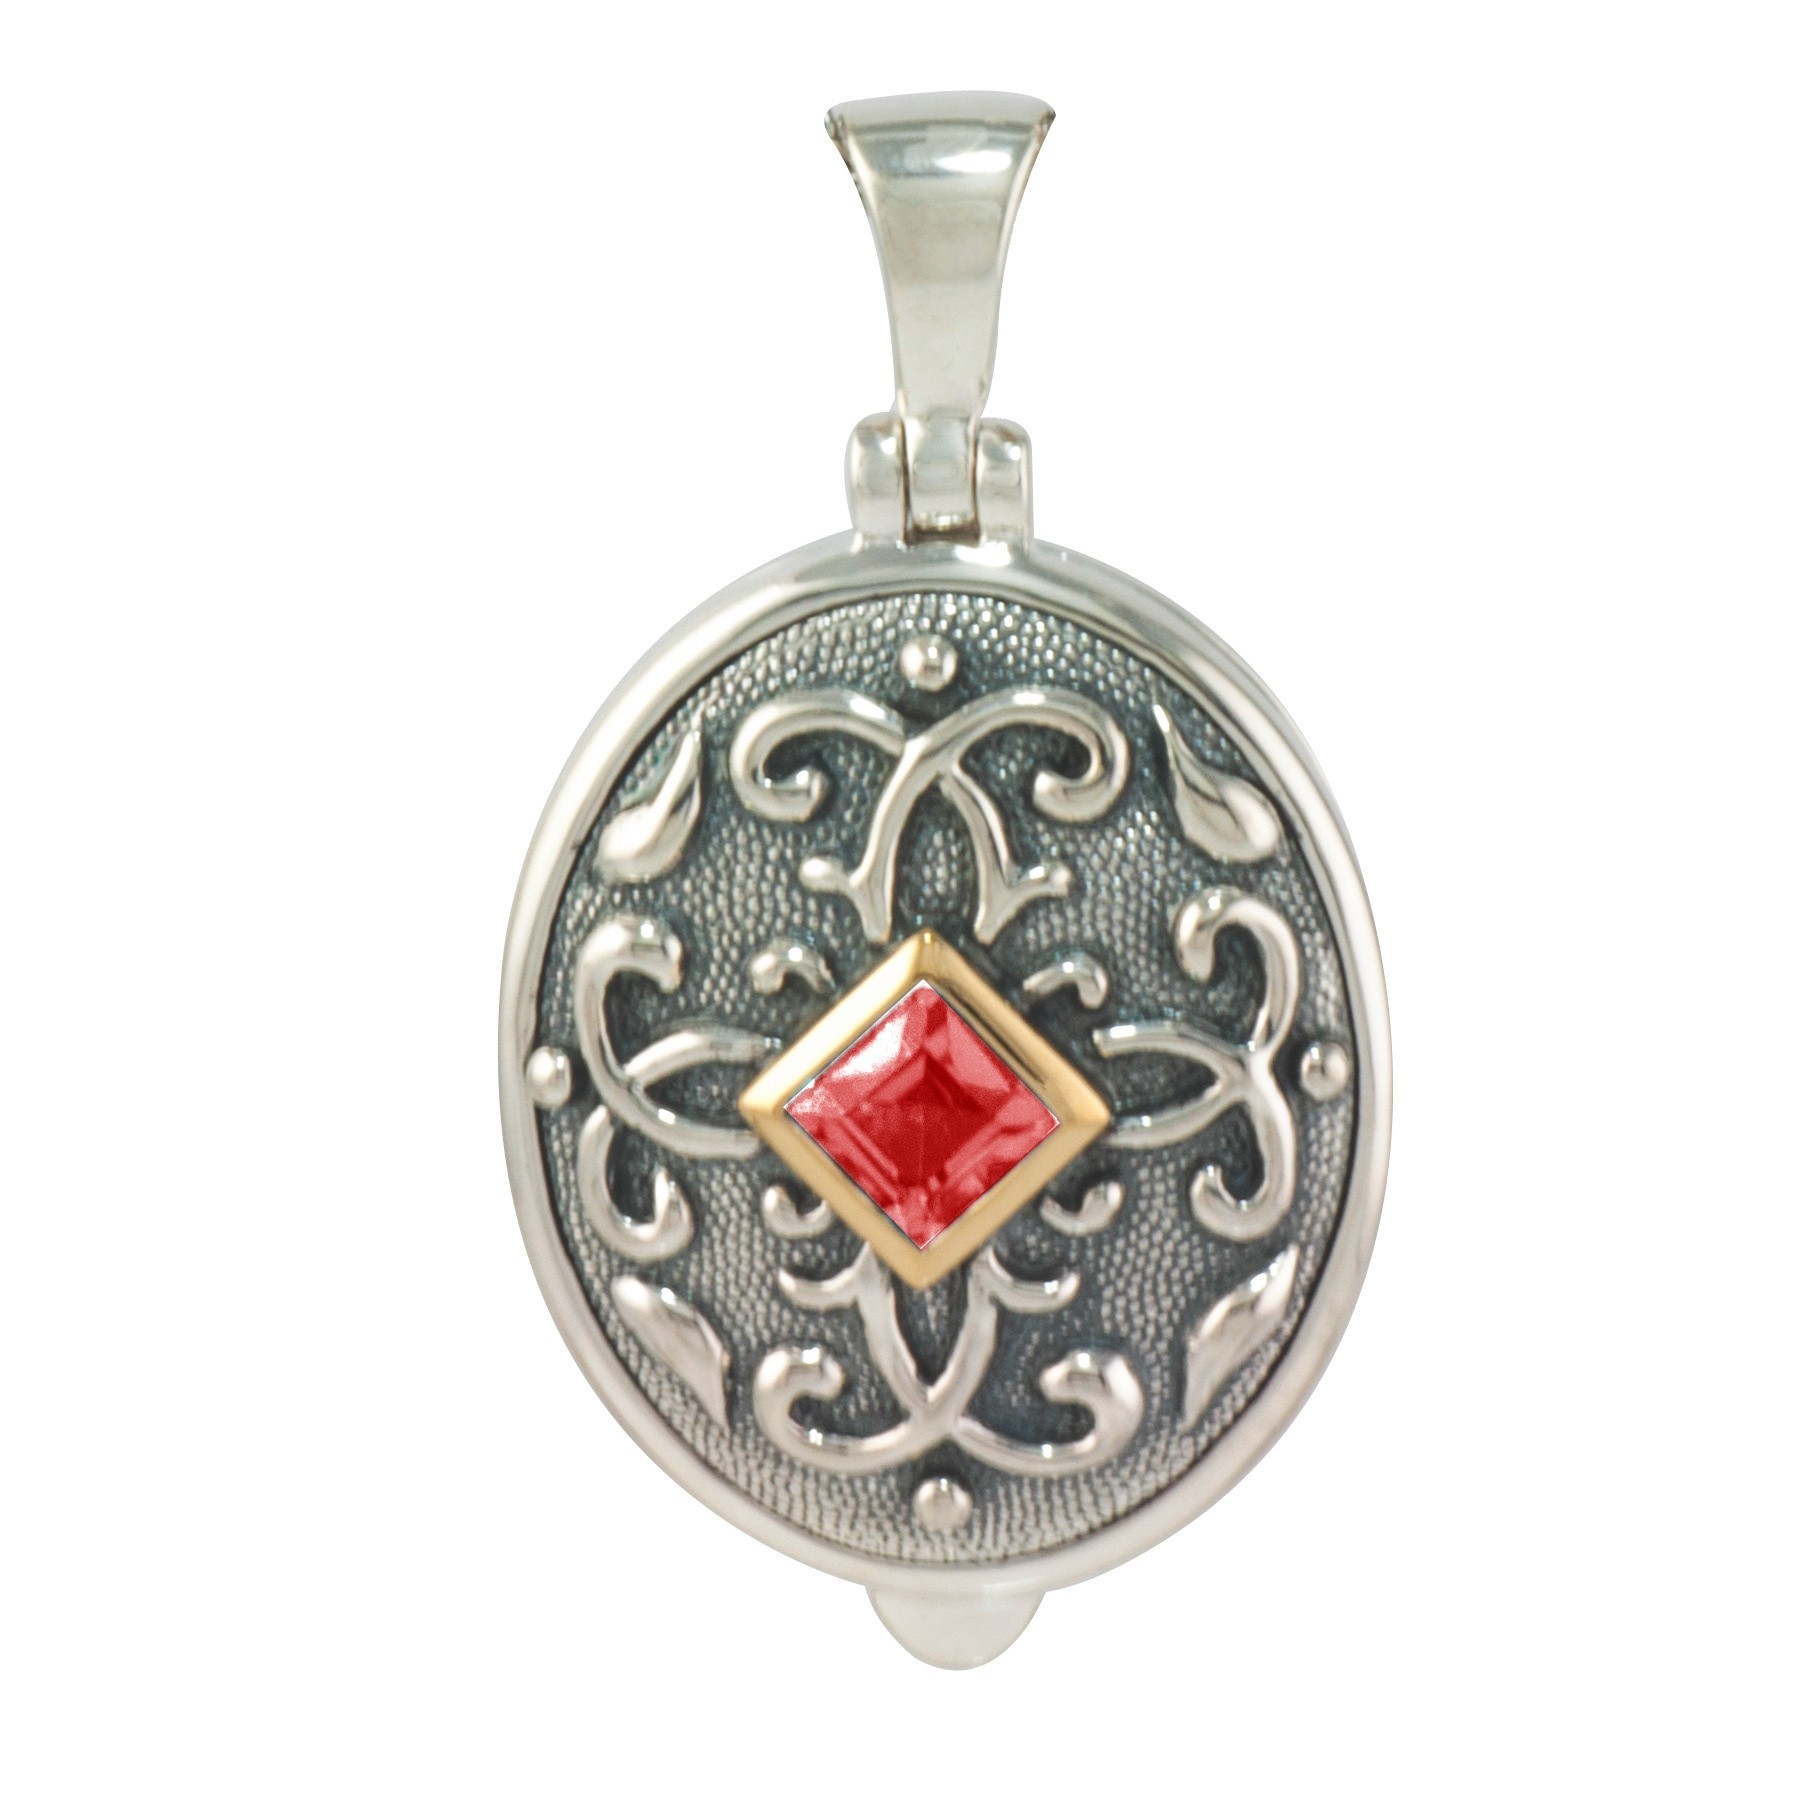 commons wiki file wikimedia celtic lockets